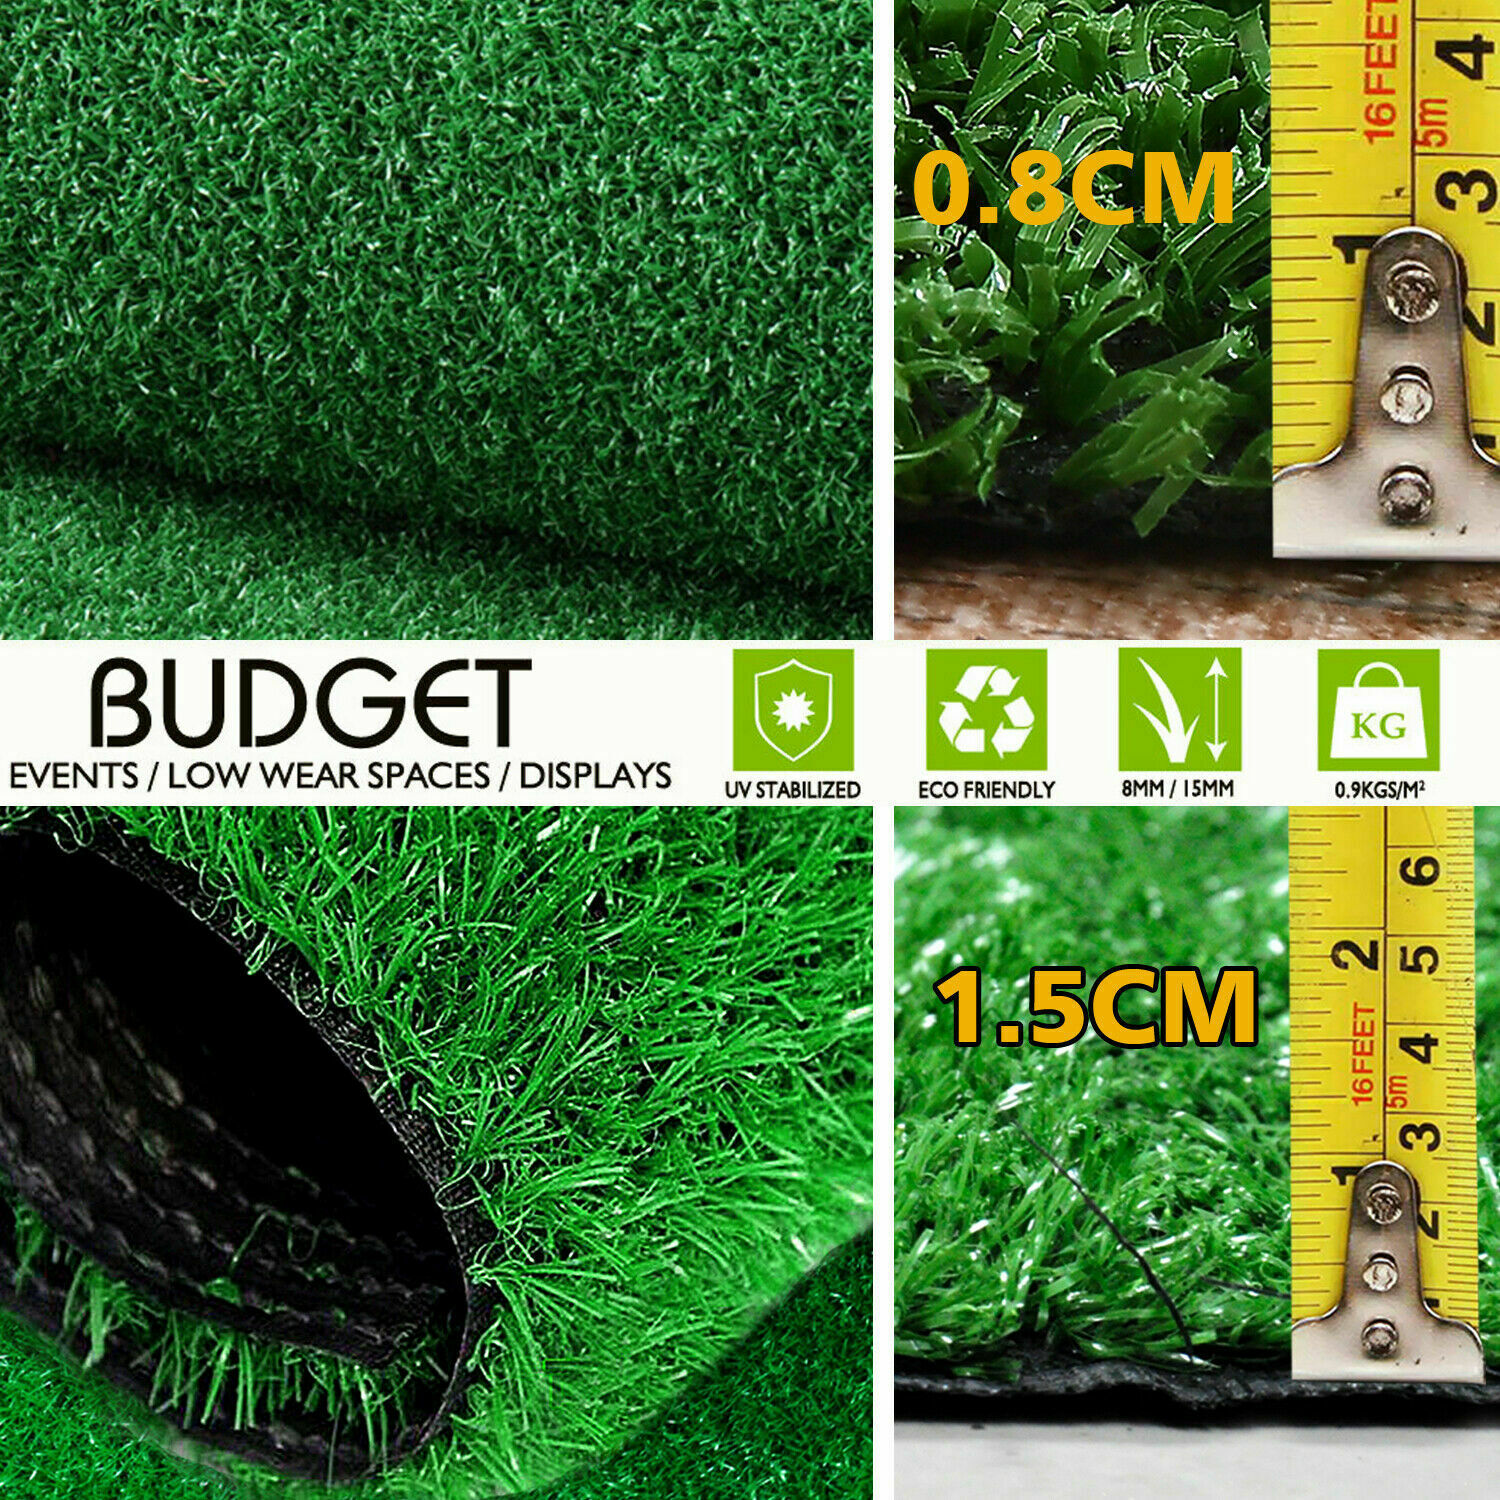 Synthetic-Grass-Turf-Decor-Artificial-Lawn-Fake-Plant-Plastic-Green-Flooring-Mat thumbnail 23